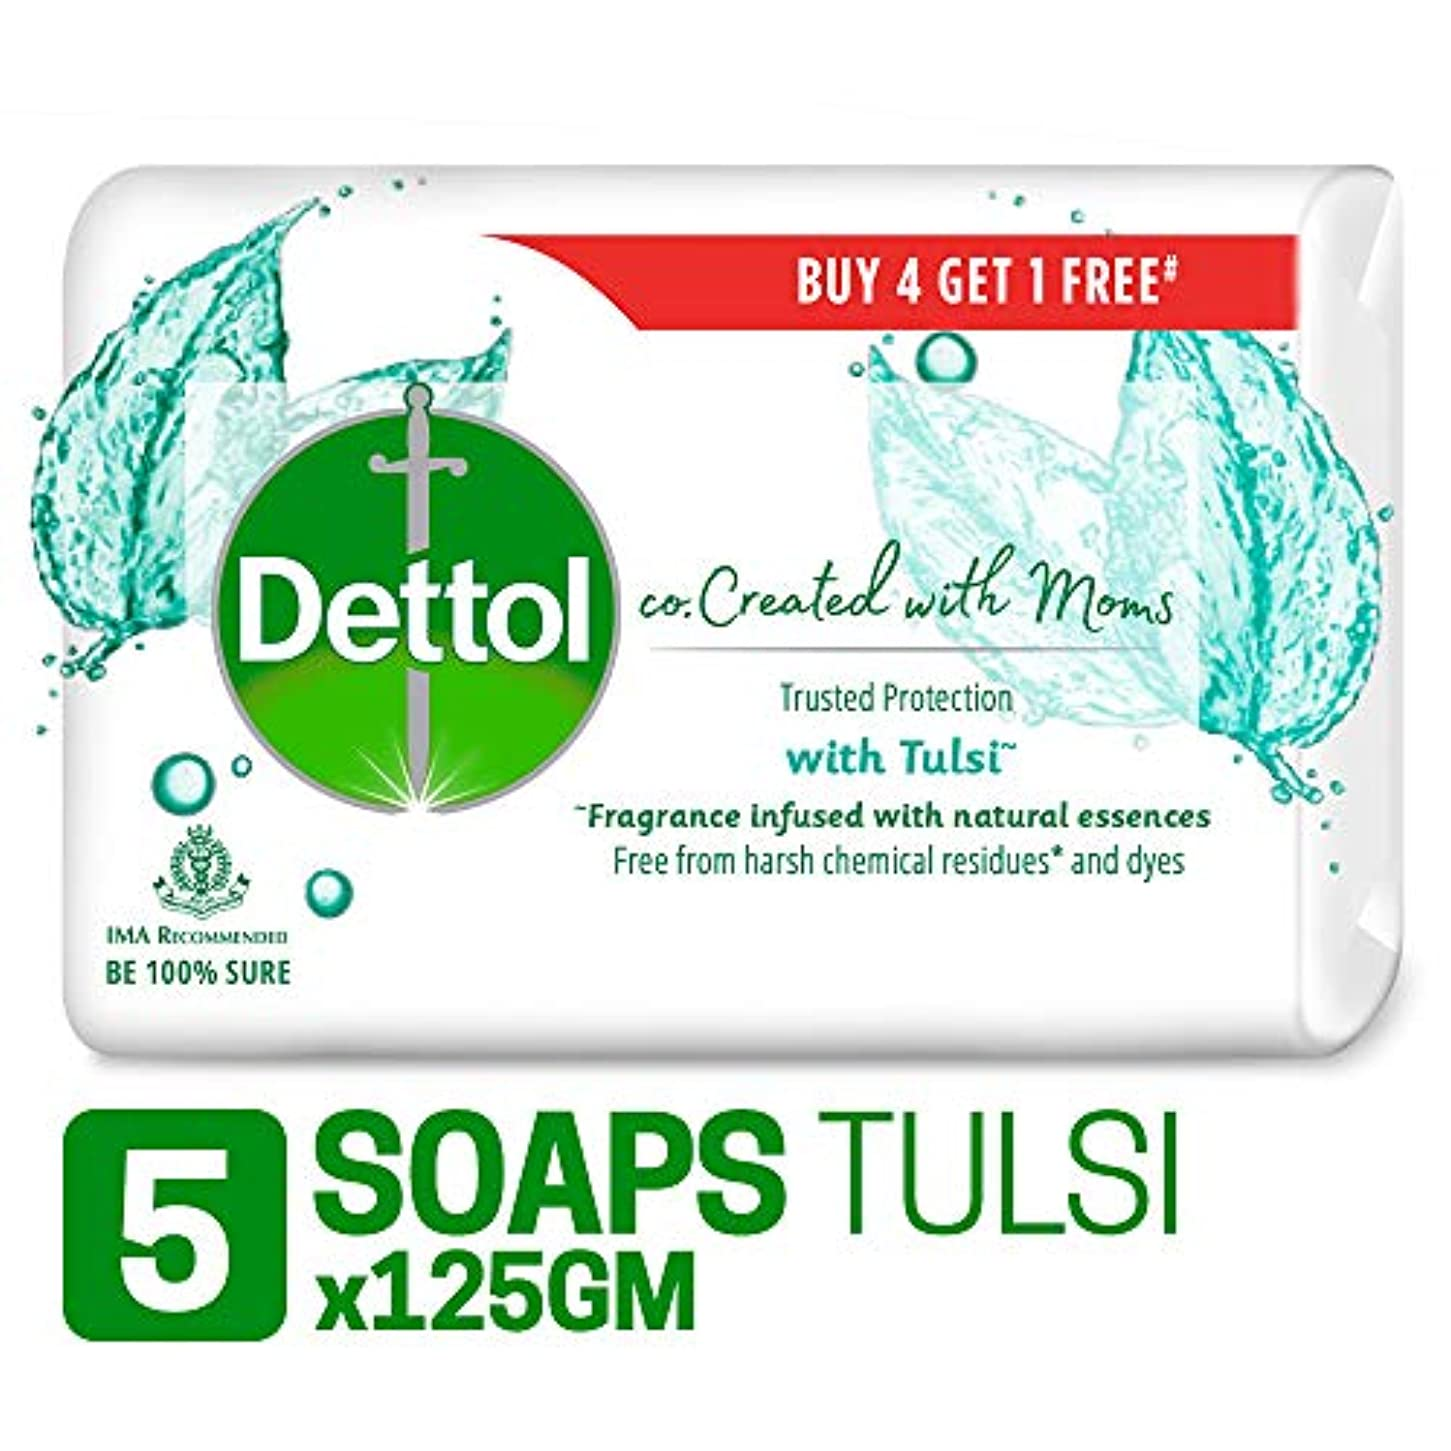 カップルバラエティ宿題Dettol Co-created with moms Tulsi Bathing Soap, 125gm (Buy 4 Get 1 Free)